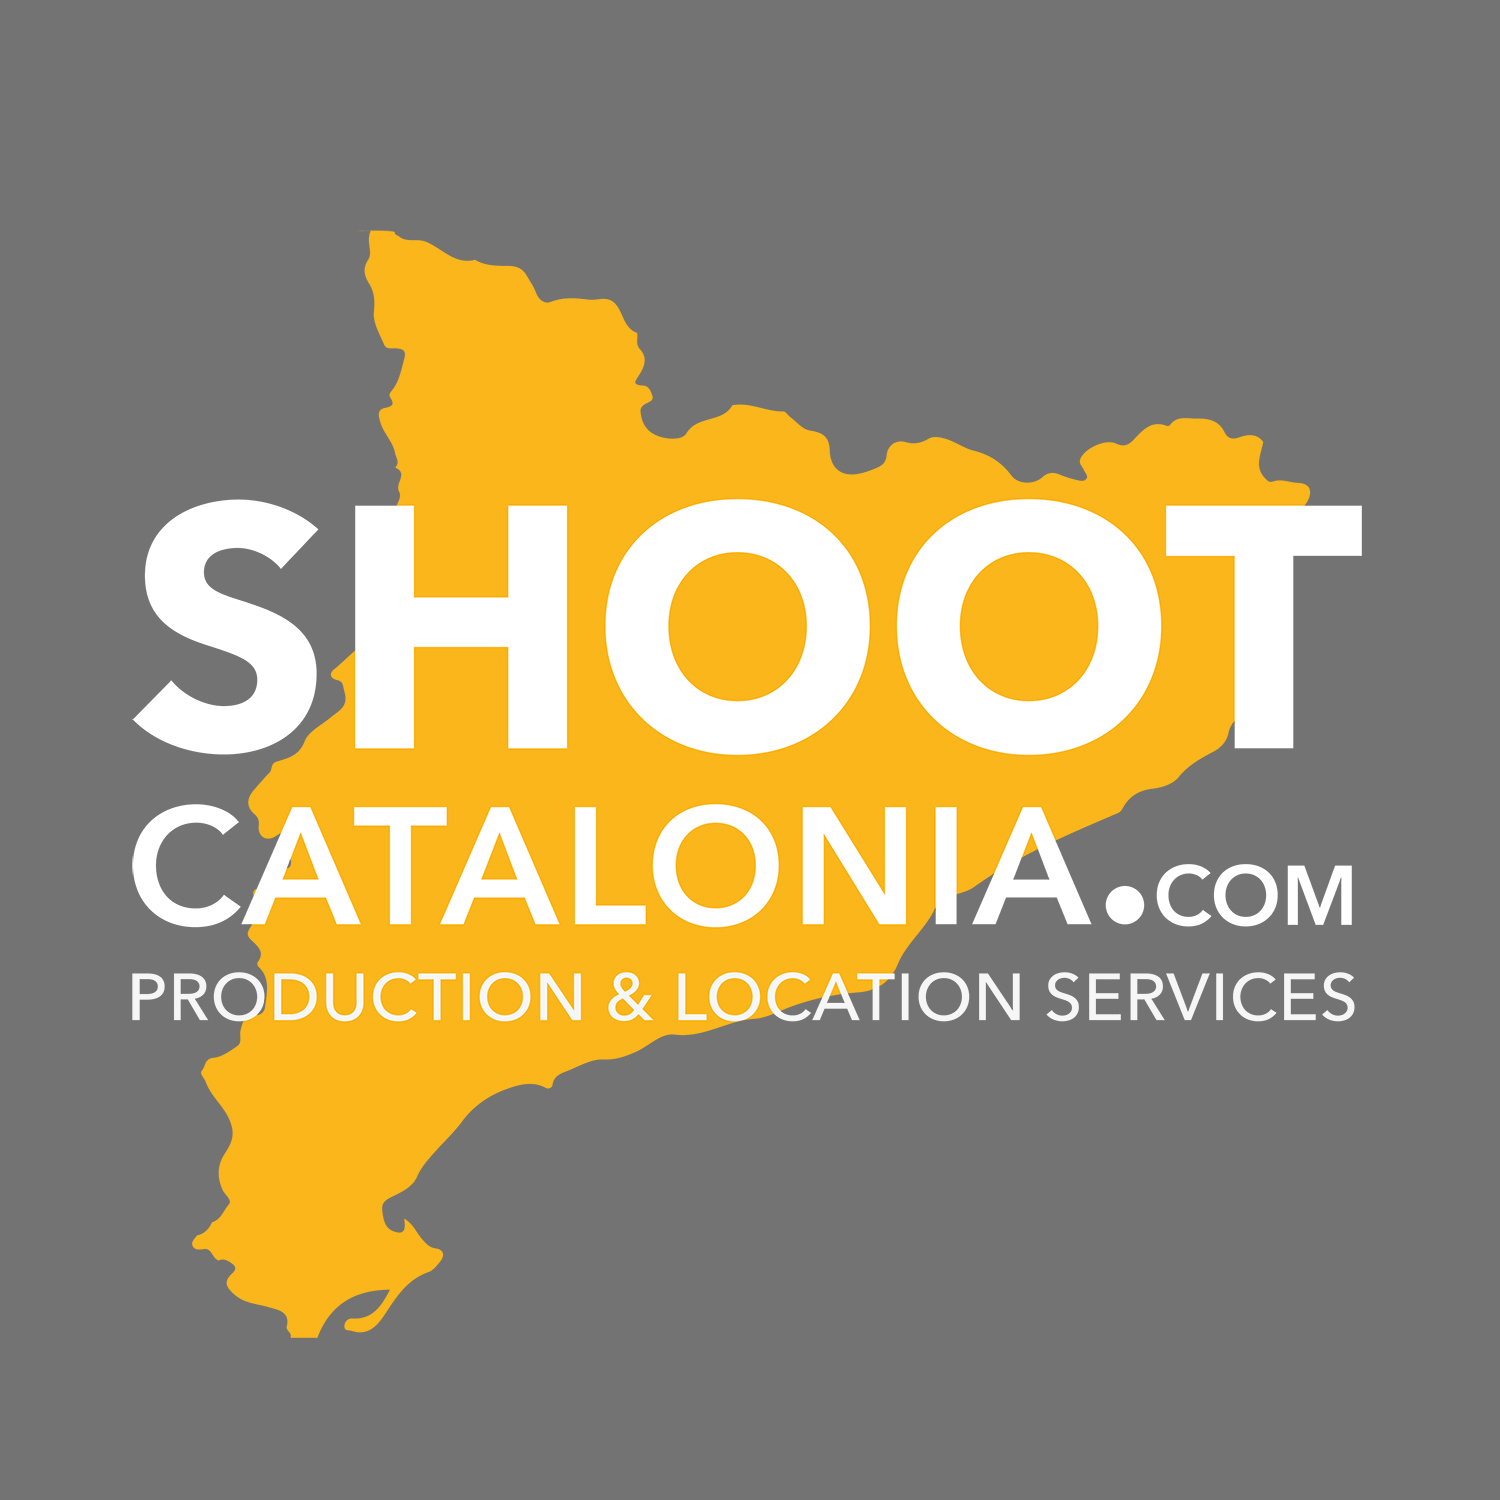 SHOOT CATALONIA